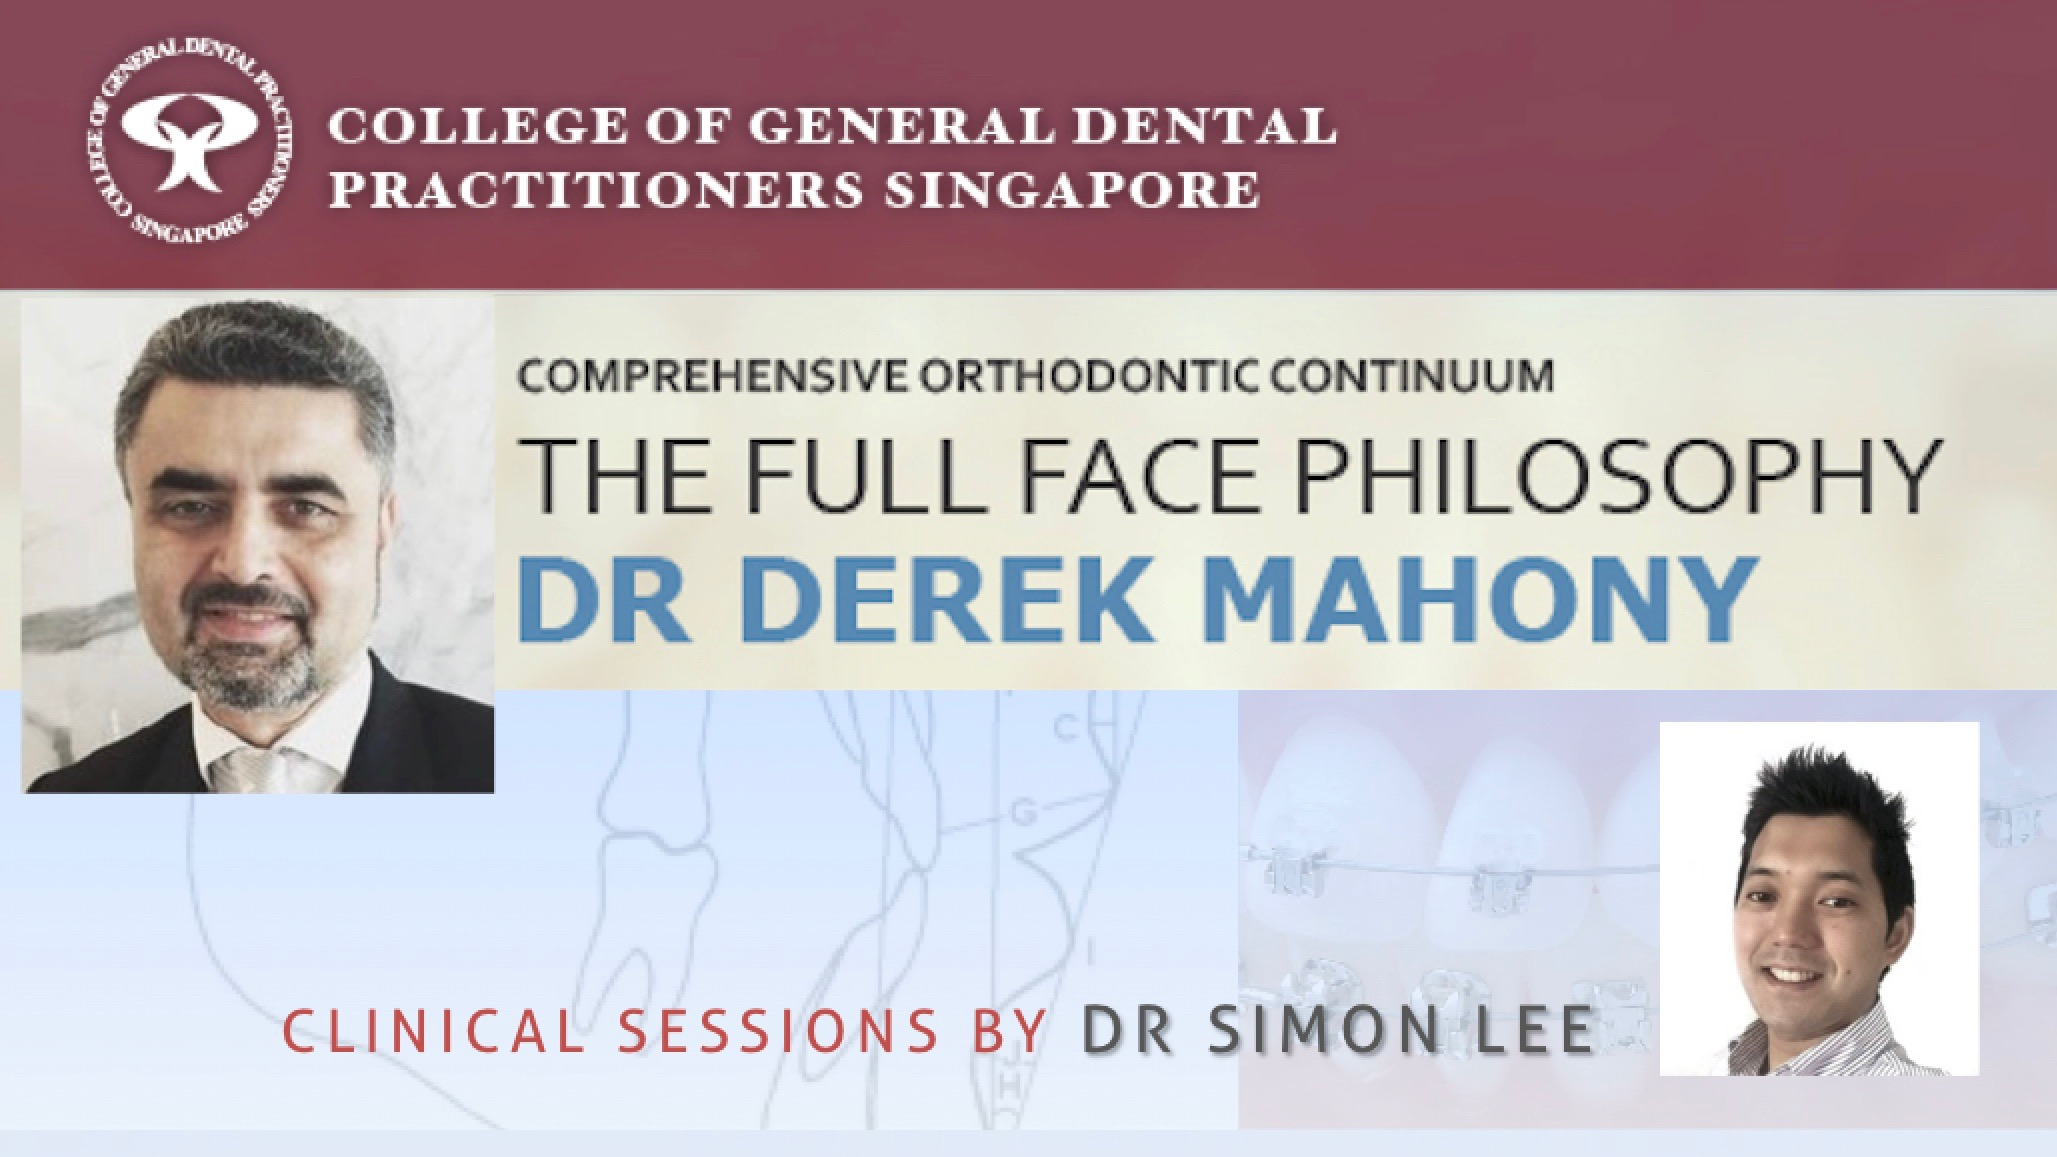 Comprehensive Orthodontic Continuum by Dr Derek Mahony